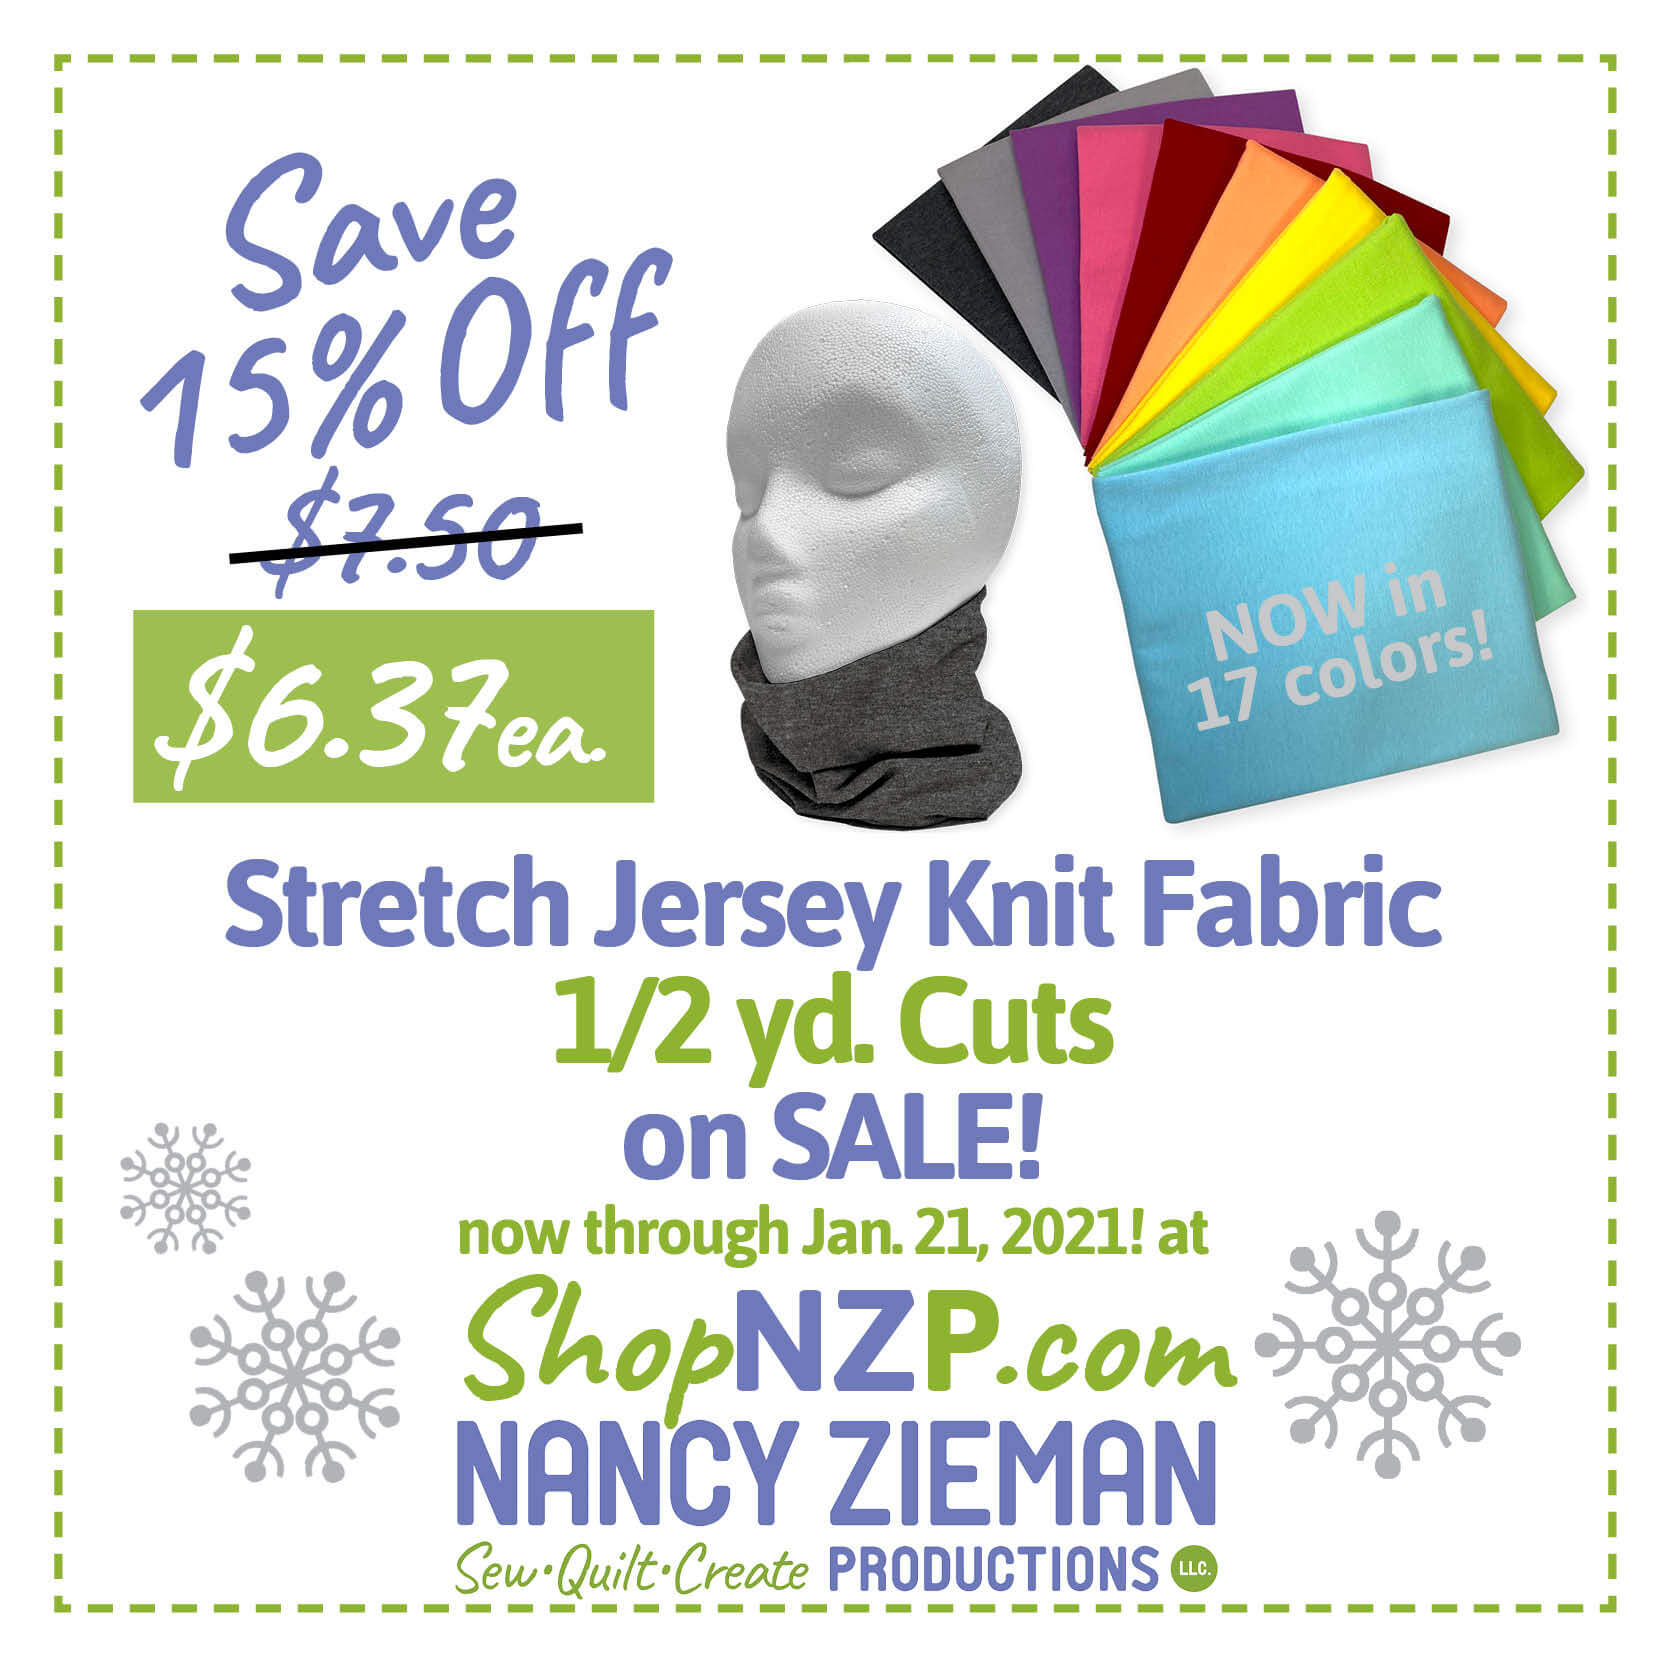 Knit Fabric Sale at Nancy Zieman Productions at ShopNZP.com Save 16 Percent Off NEW! Stretch Jersey Knit Fabric Packs